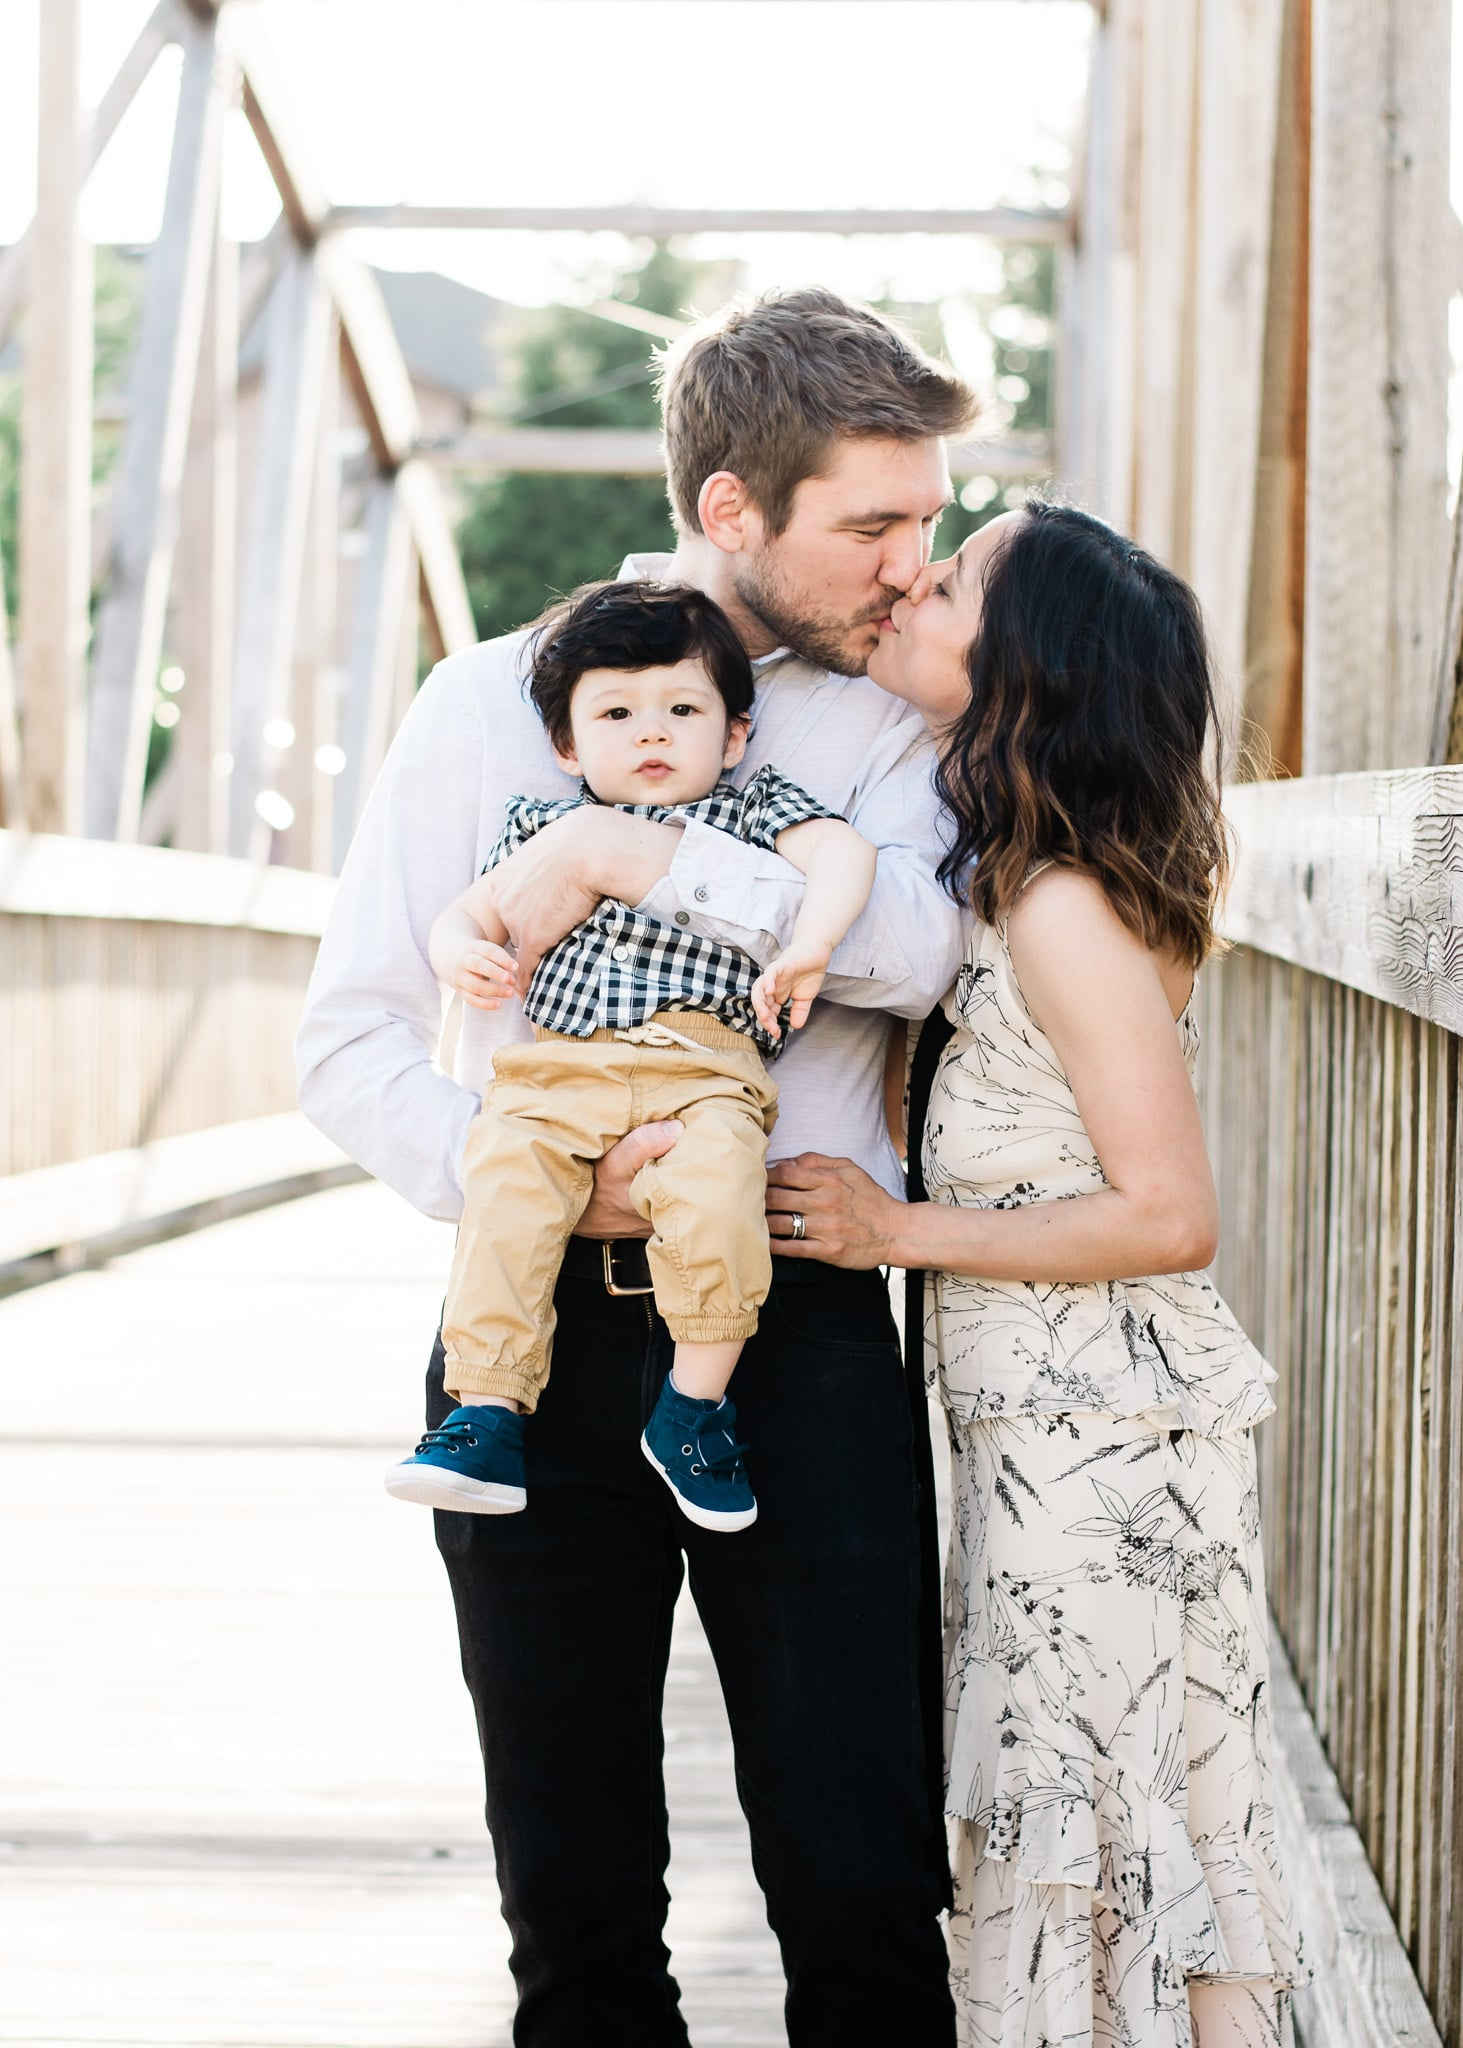 A one year old milestone photo with parents kissing.